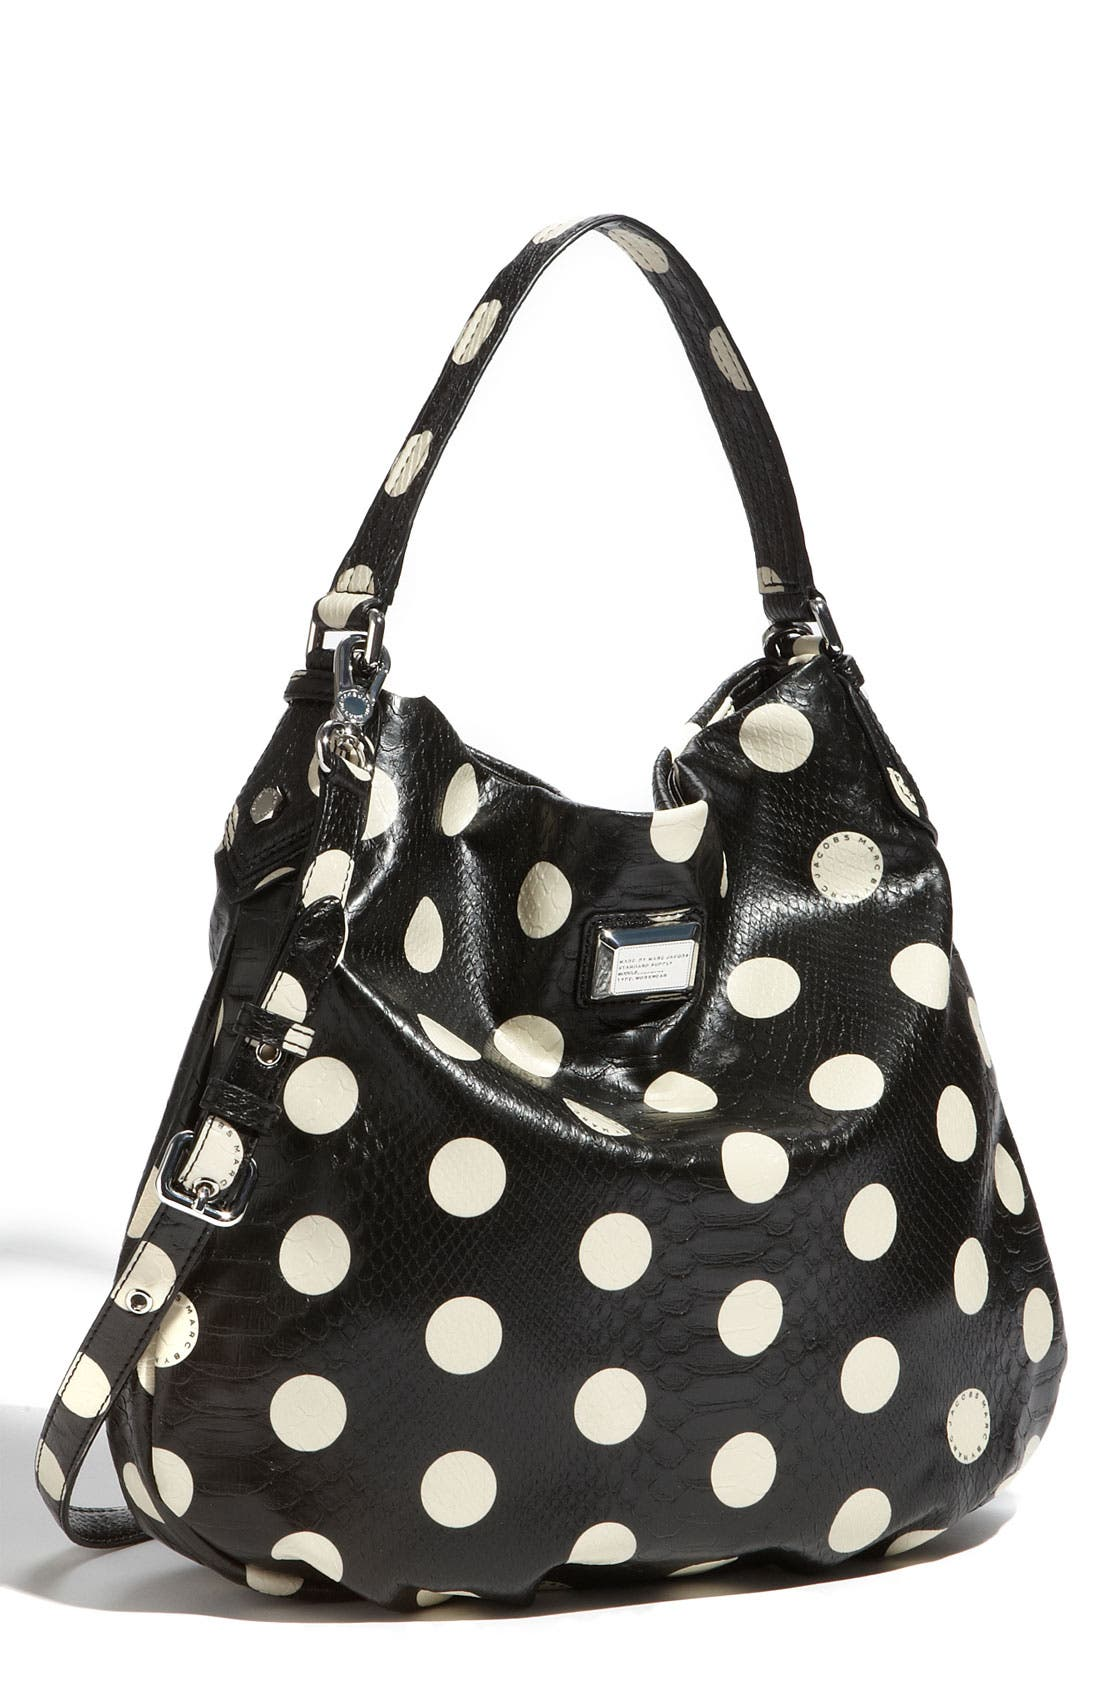 Main Image - MARC BY MARC JACOBS 'Dotty Snake Hillier' Faux Leather Hobo